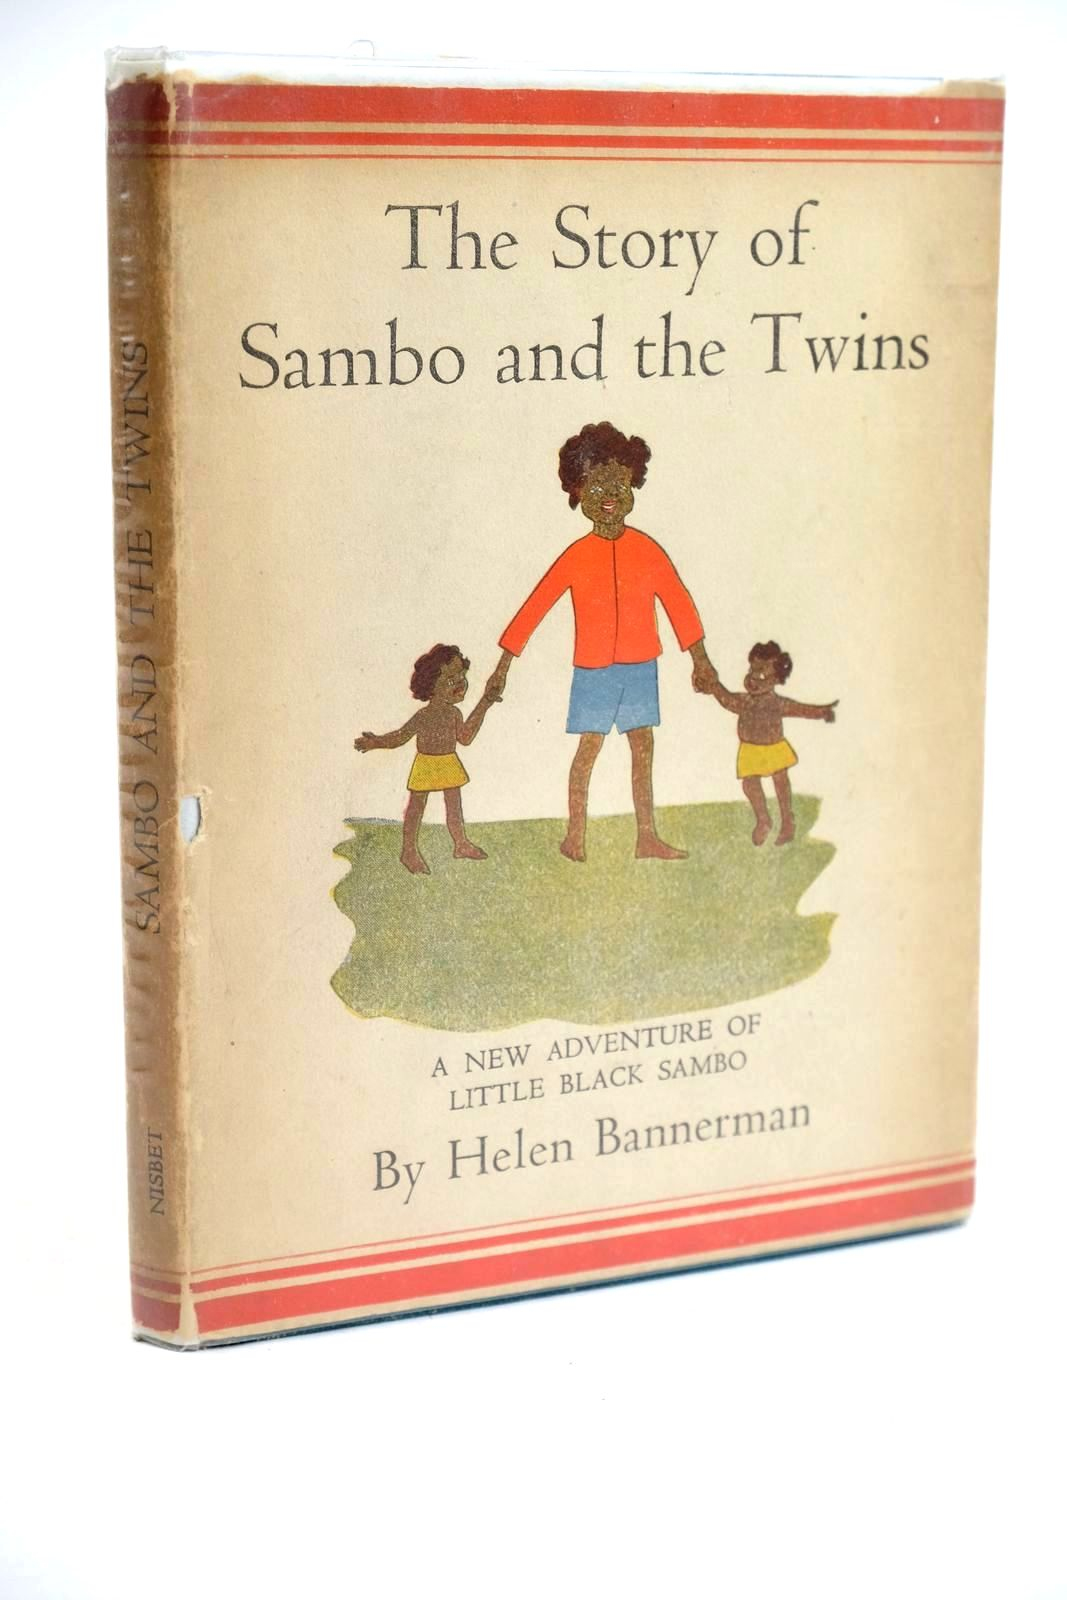 Photo of THE STORY OF SAMBO AND THE TWINS written by Bannerman, Helen illustrated by Bannerman, Helen published by Nisbet & Co. Ltd. (STOCK CODE: 1320376)  for sale by Stella & Rose's Books